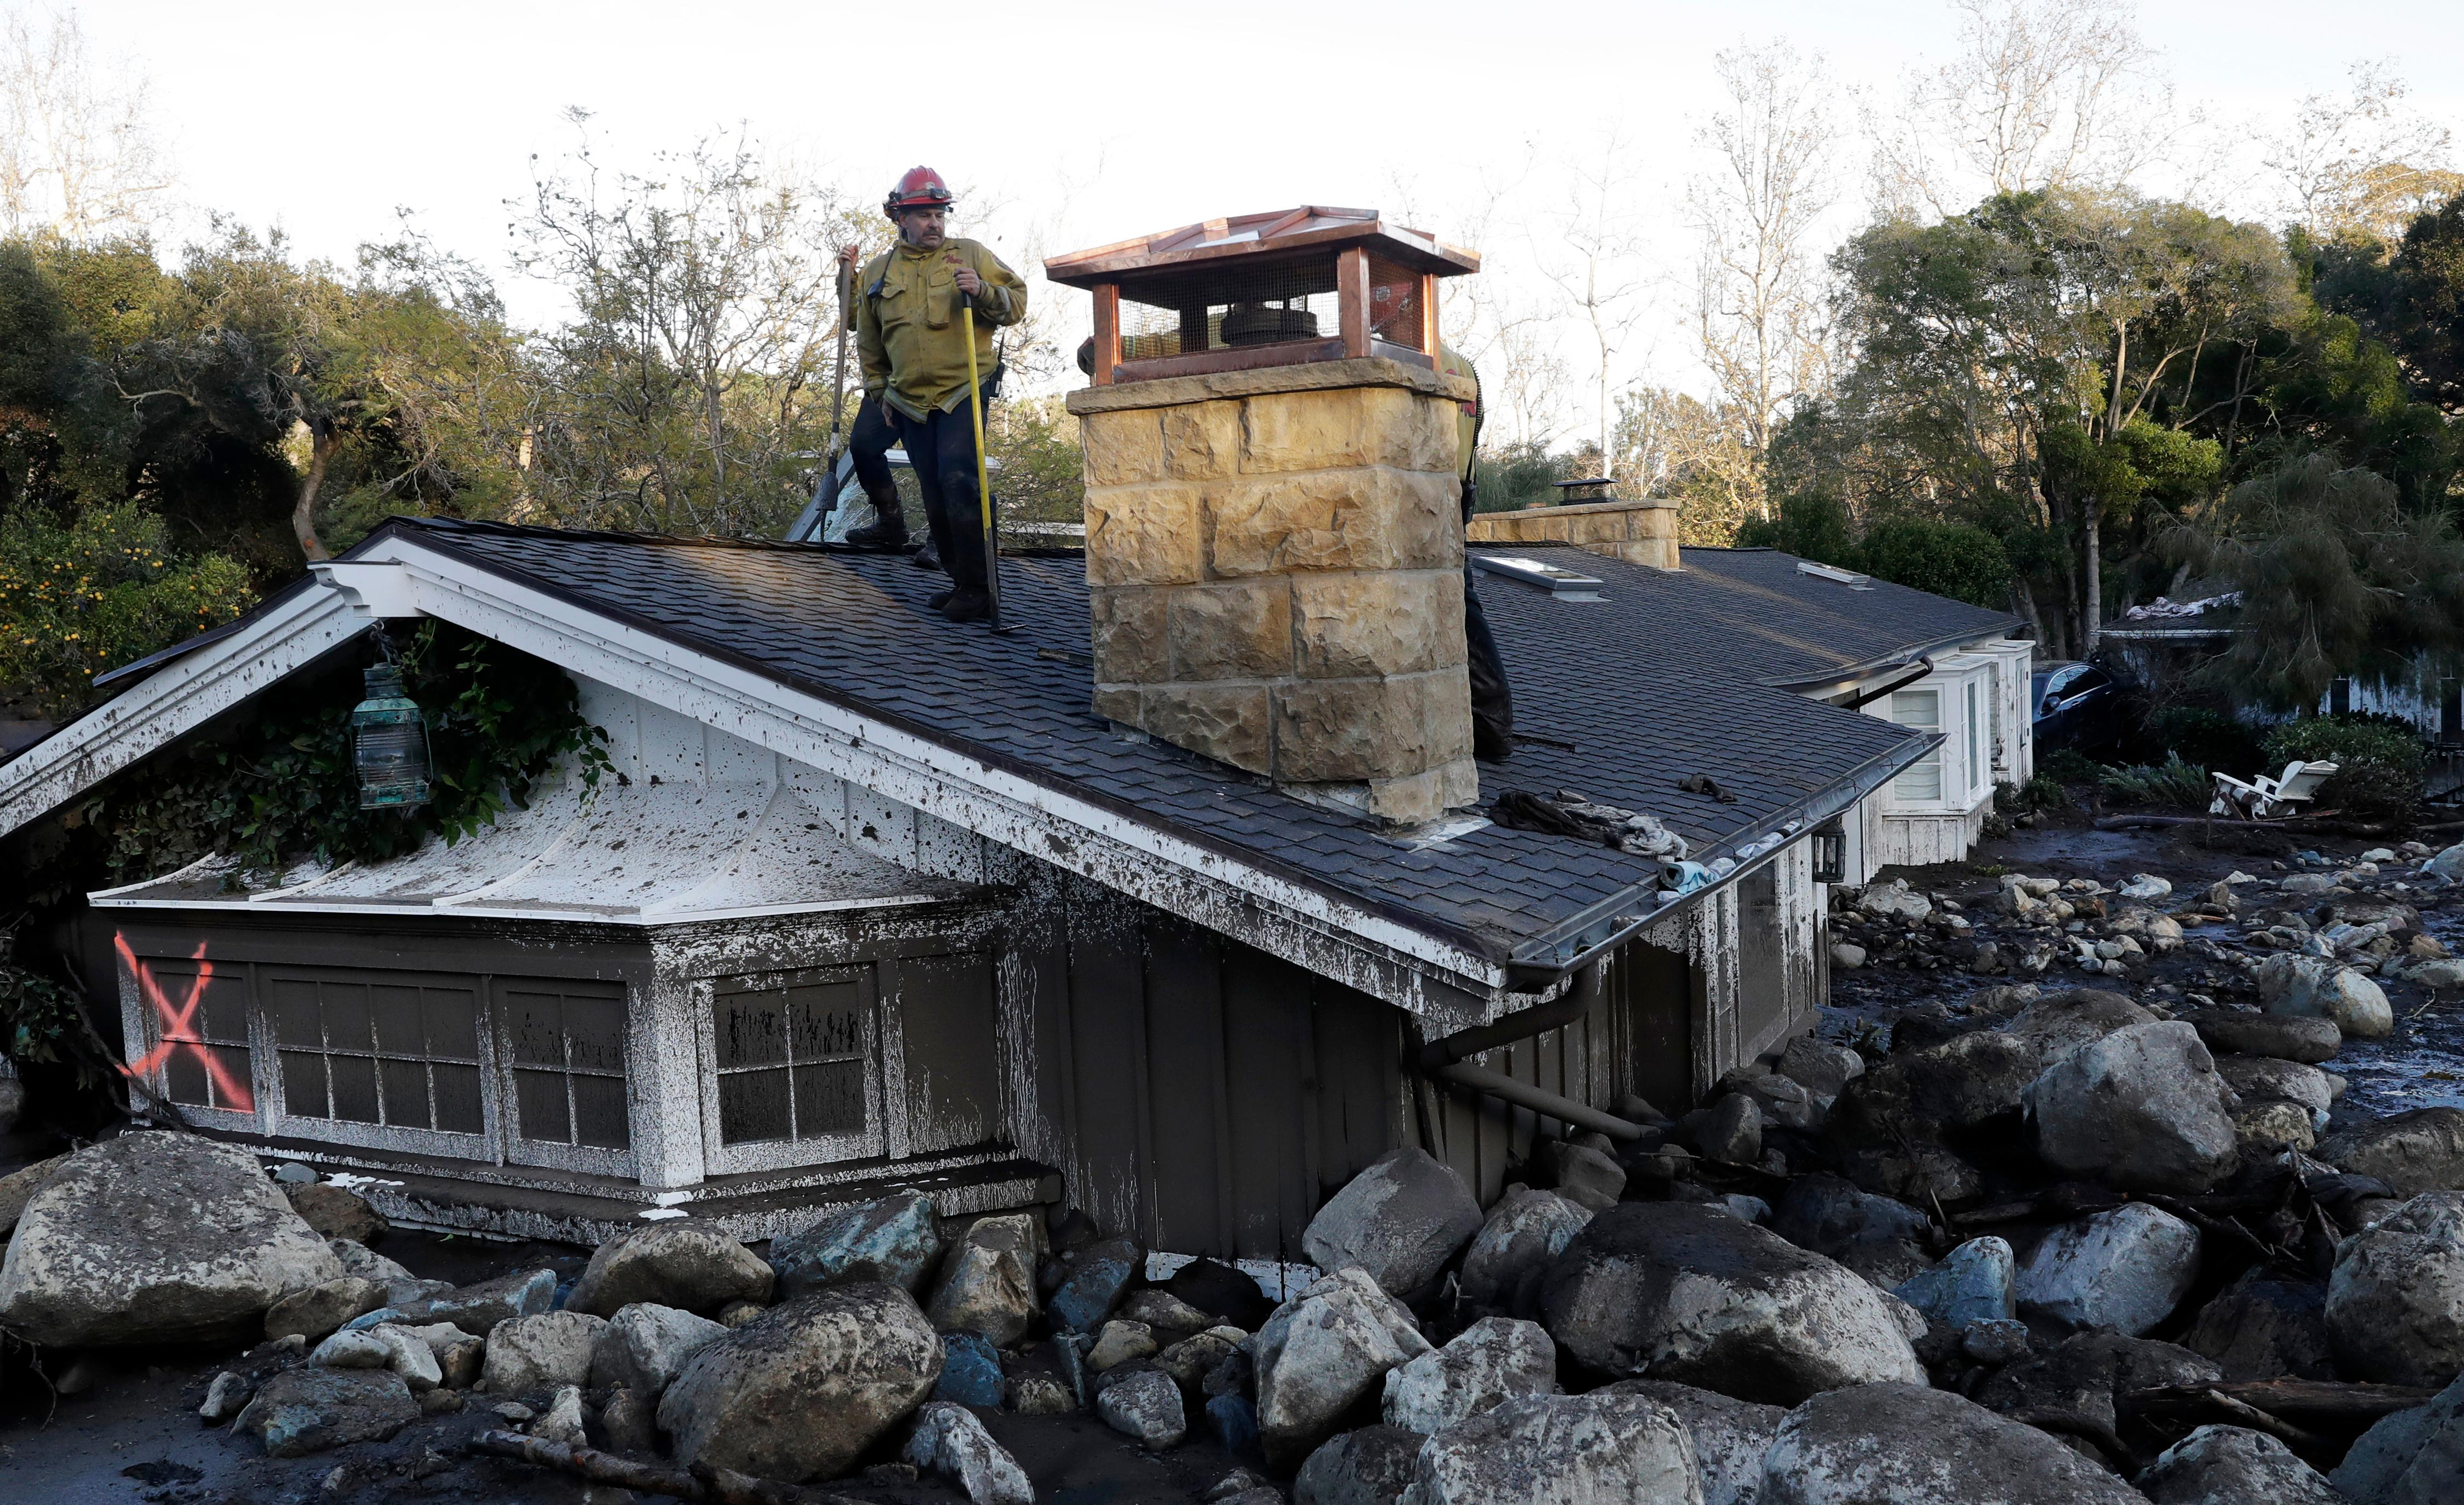 A firefighter stands on the roof of a house submerged in mud and rocks Wednesday, Jan. 10, 2018, in Montecito, Calif. Anxious family members awaited word on loved ones Wednesday as rescue crews searched grimy debris and ruins for more than a dozen people missing after mudslides in Southern California destroyed houses, swept cars to the beach and left more than a dozen victims dead. (AP Photo/Marcio Jose Sanchez)